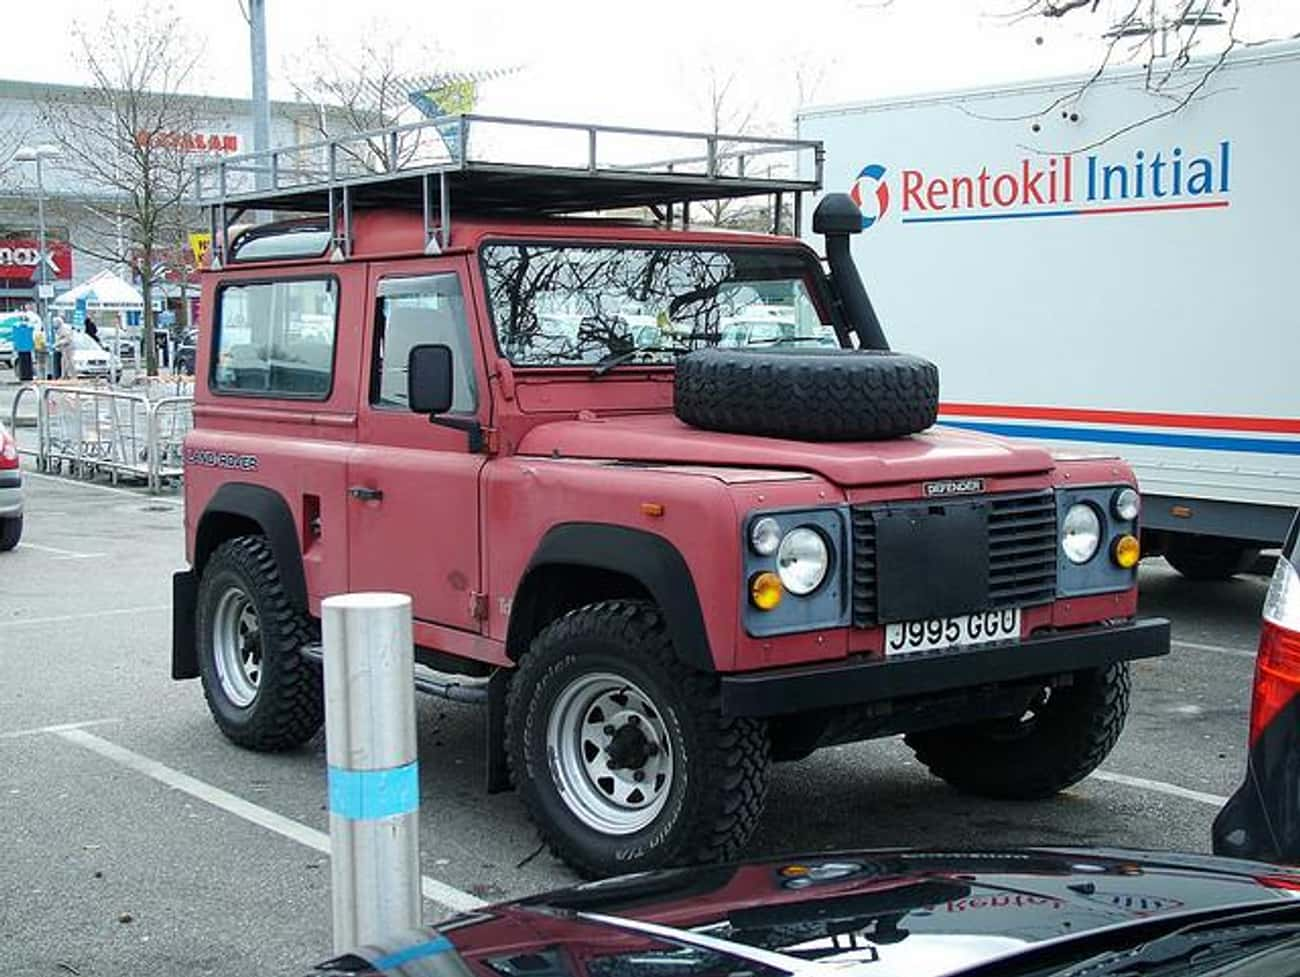 1993 Land Rover Defender 110 S is listed (or ranked) 2 on the list The Best Land Rover Defenders of All Time